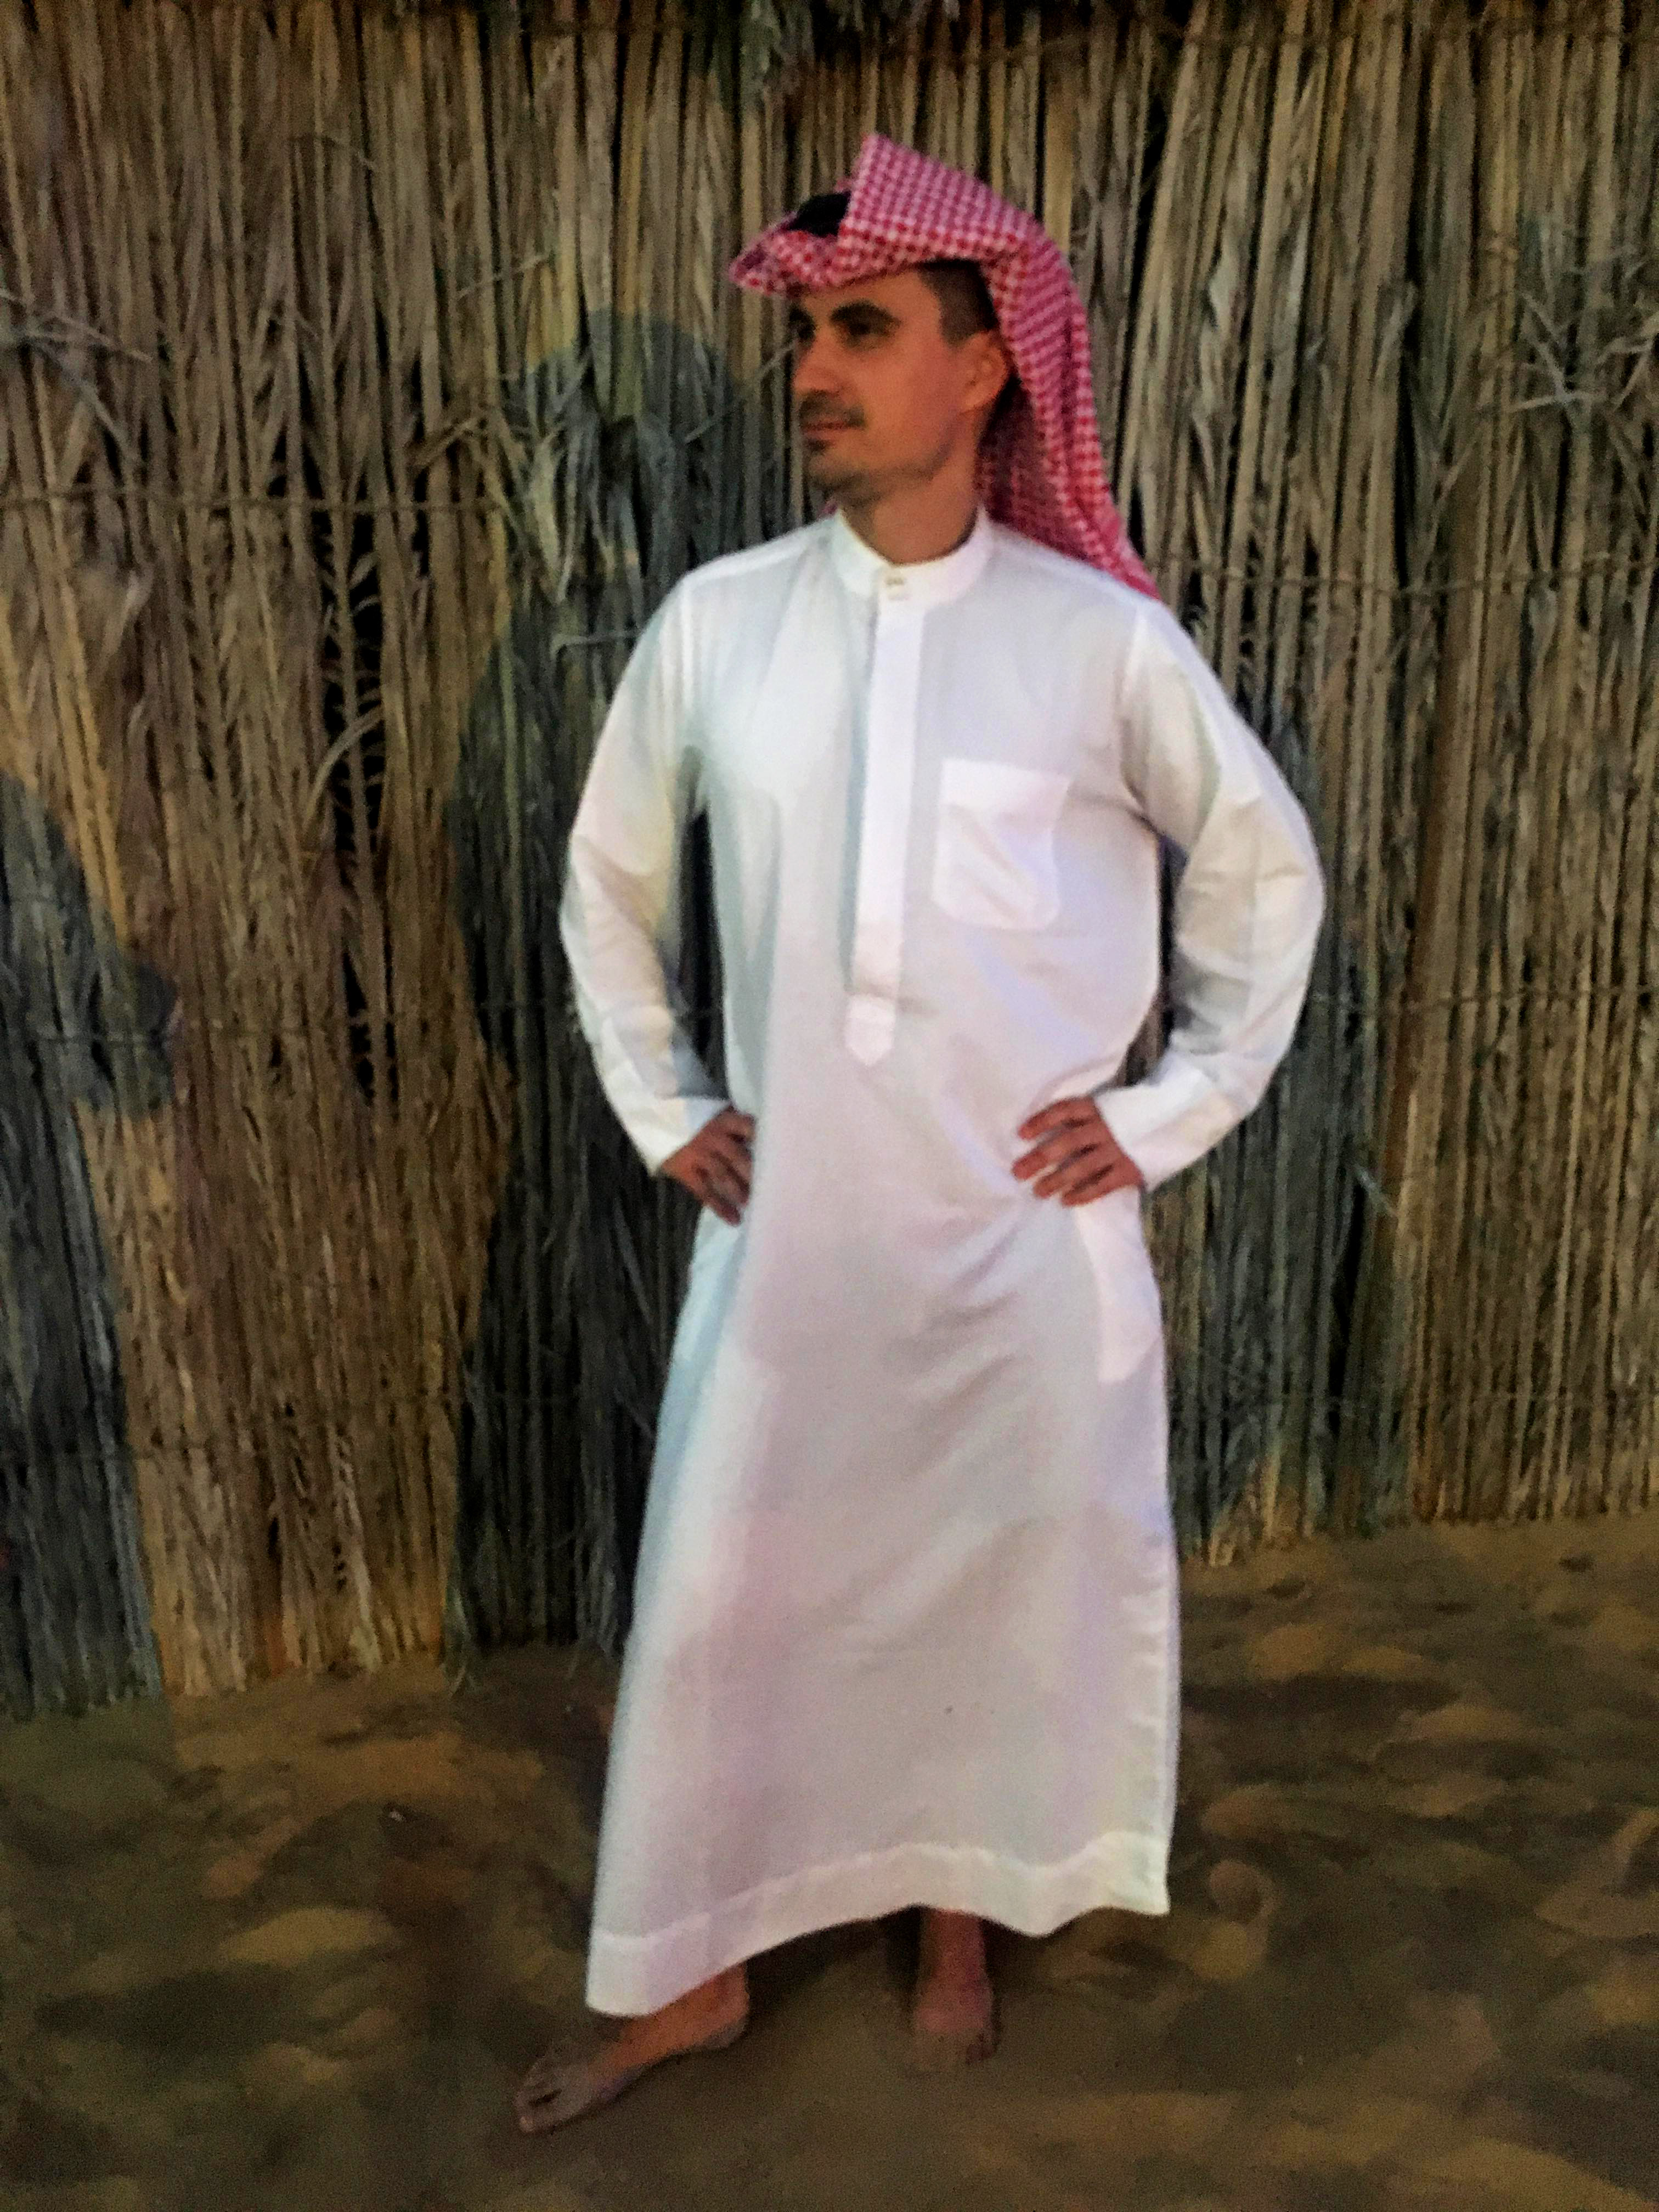 a boy dressed as a shekh with a white dress and red scarf during a desert safari experience in dubai